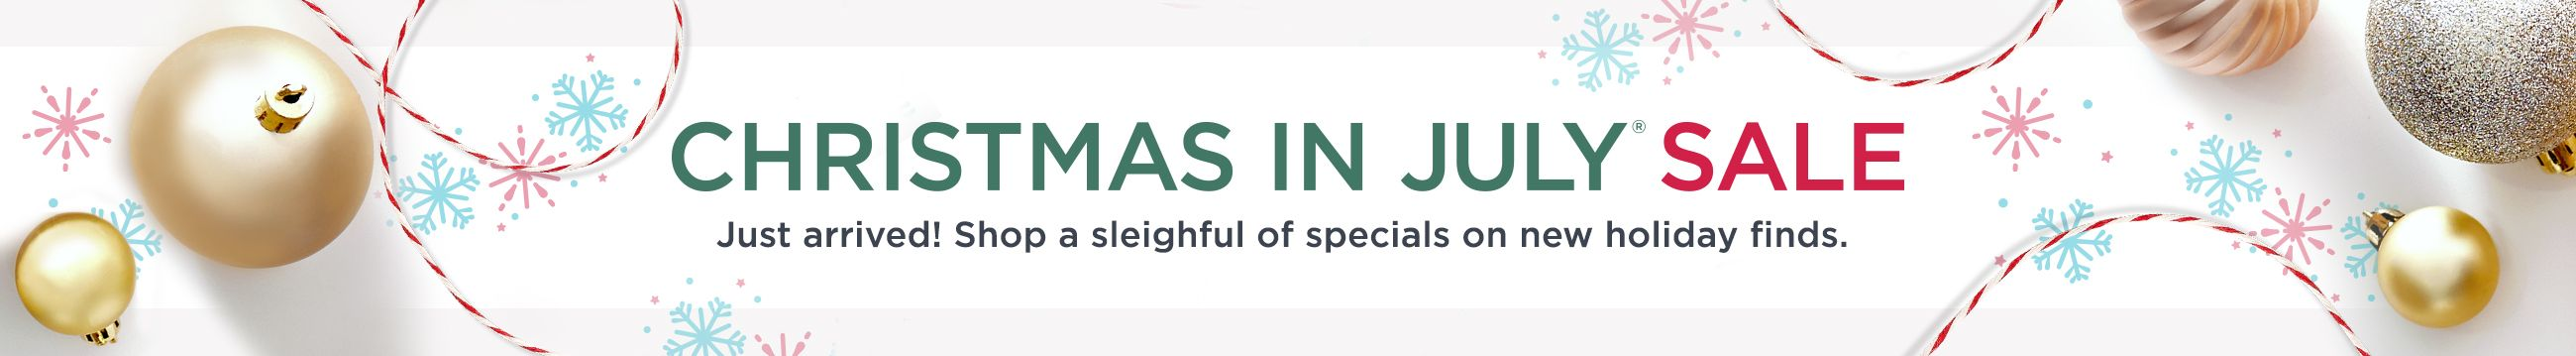 Christmas in July® Sale. Just arrived! Shop a sleighful of specials on new holiday finds.